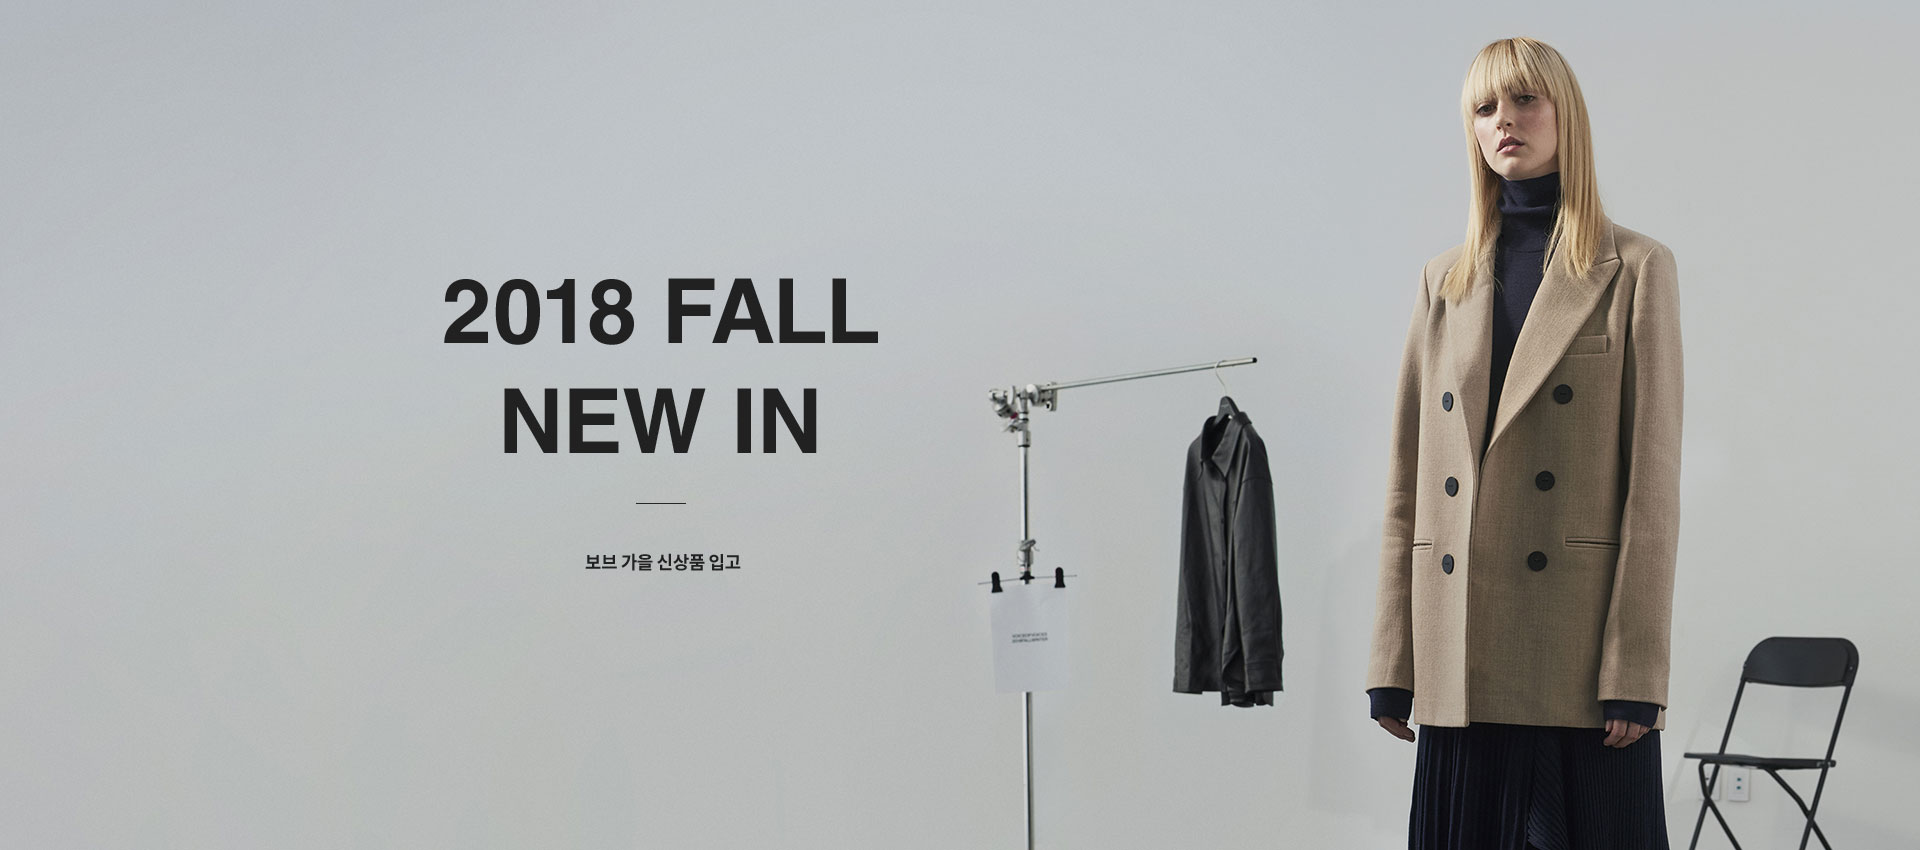 18 fall new in